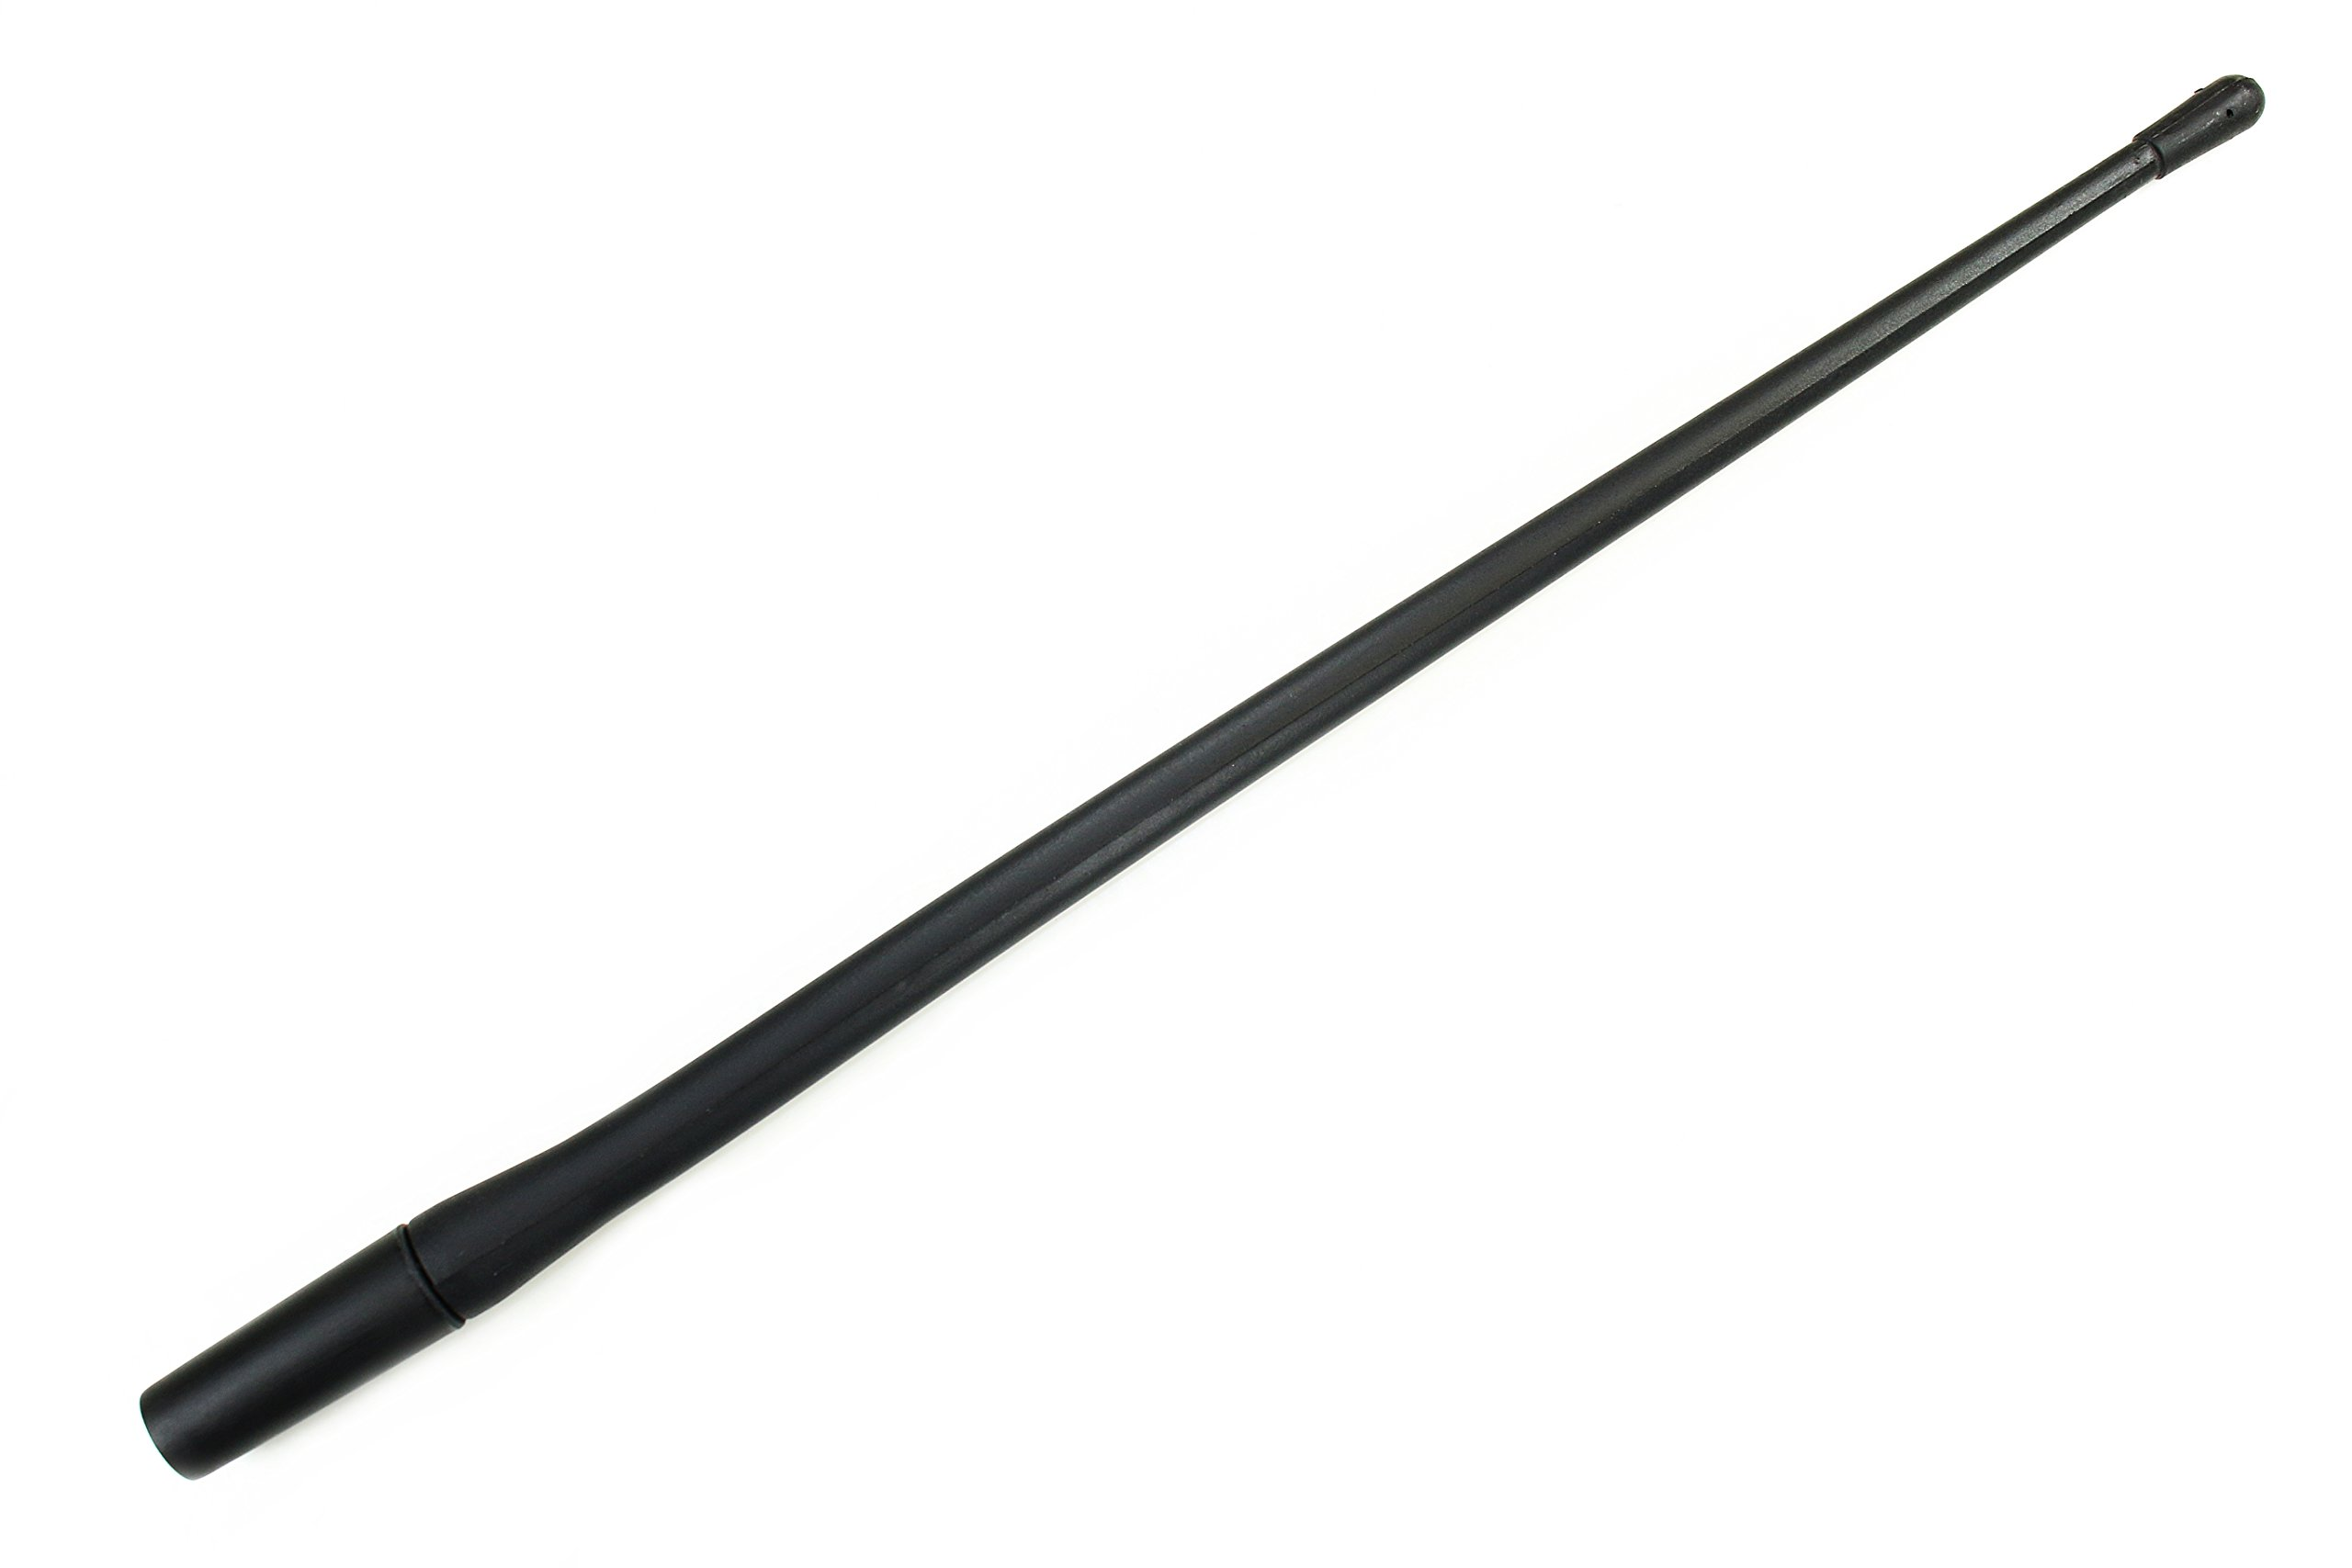 AntennaMastsRus - 13'' All-Terrain Flexible Rubber Antenna works with Chevrolet Silverado 3500 (2006-2019) - SPRING STEEL INTERNAL CORE